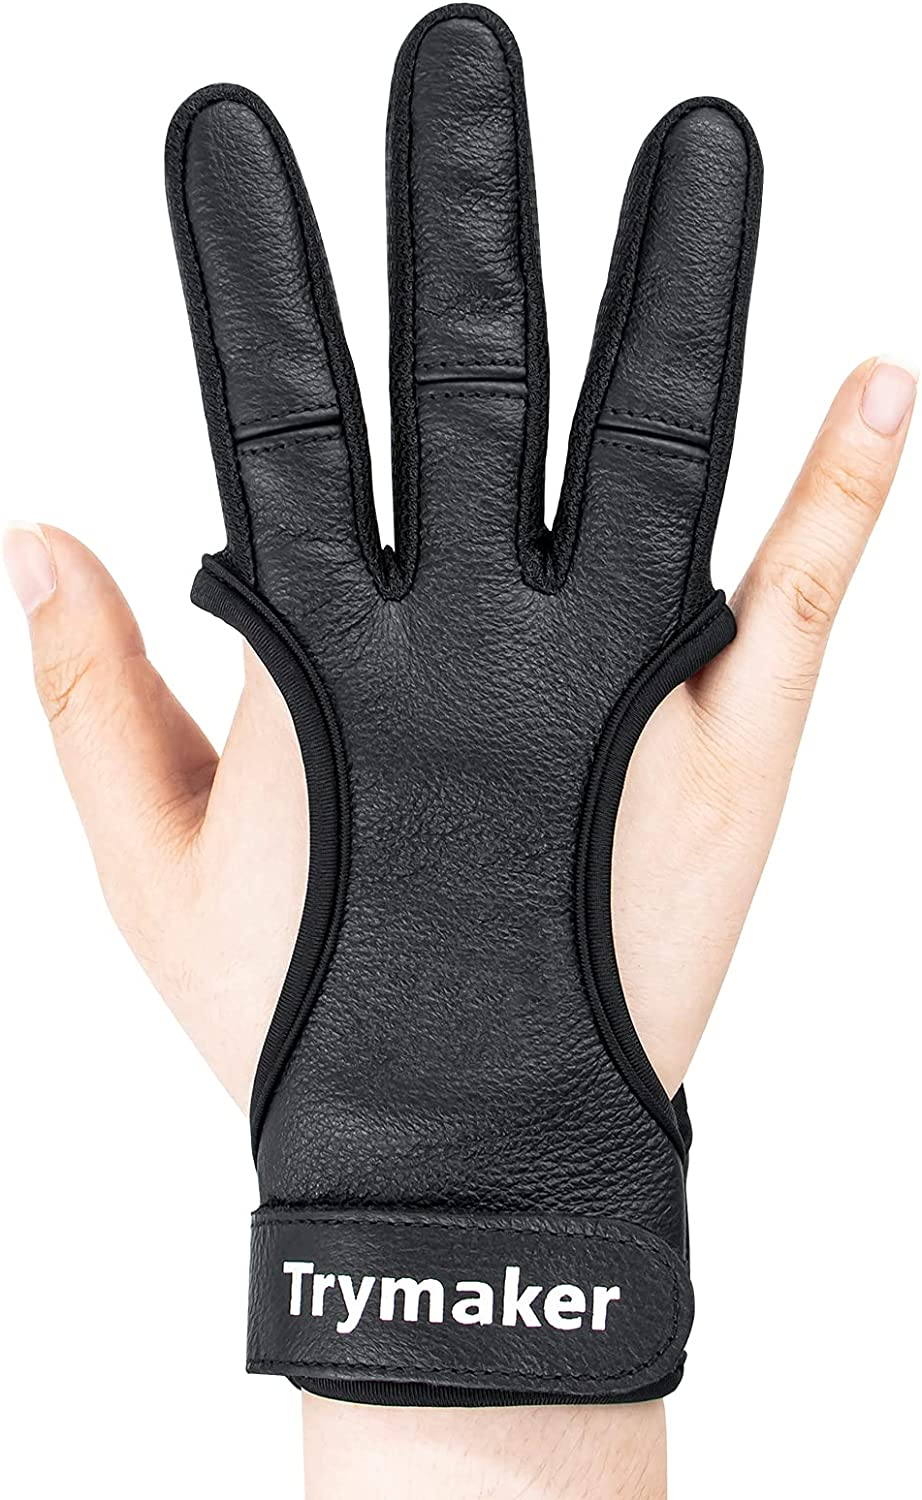 Trymaker Archery Glove Protective Gloves for Recurve Bow and Com Discount latest mail order